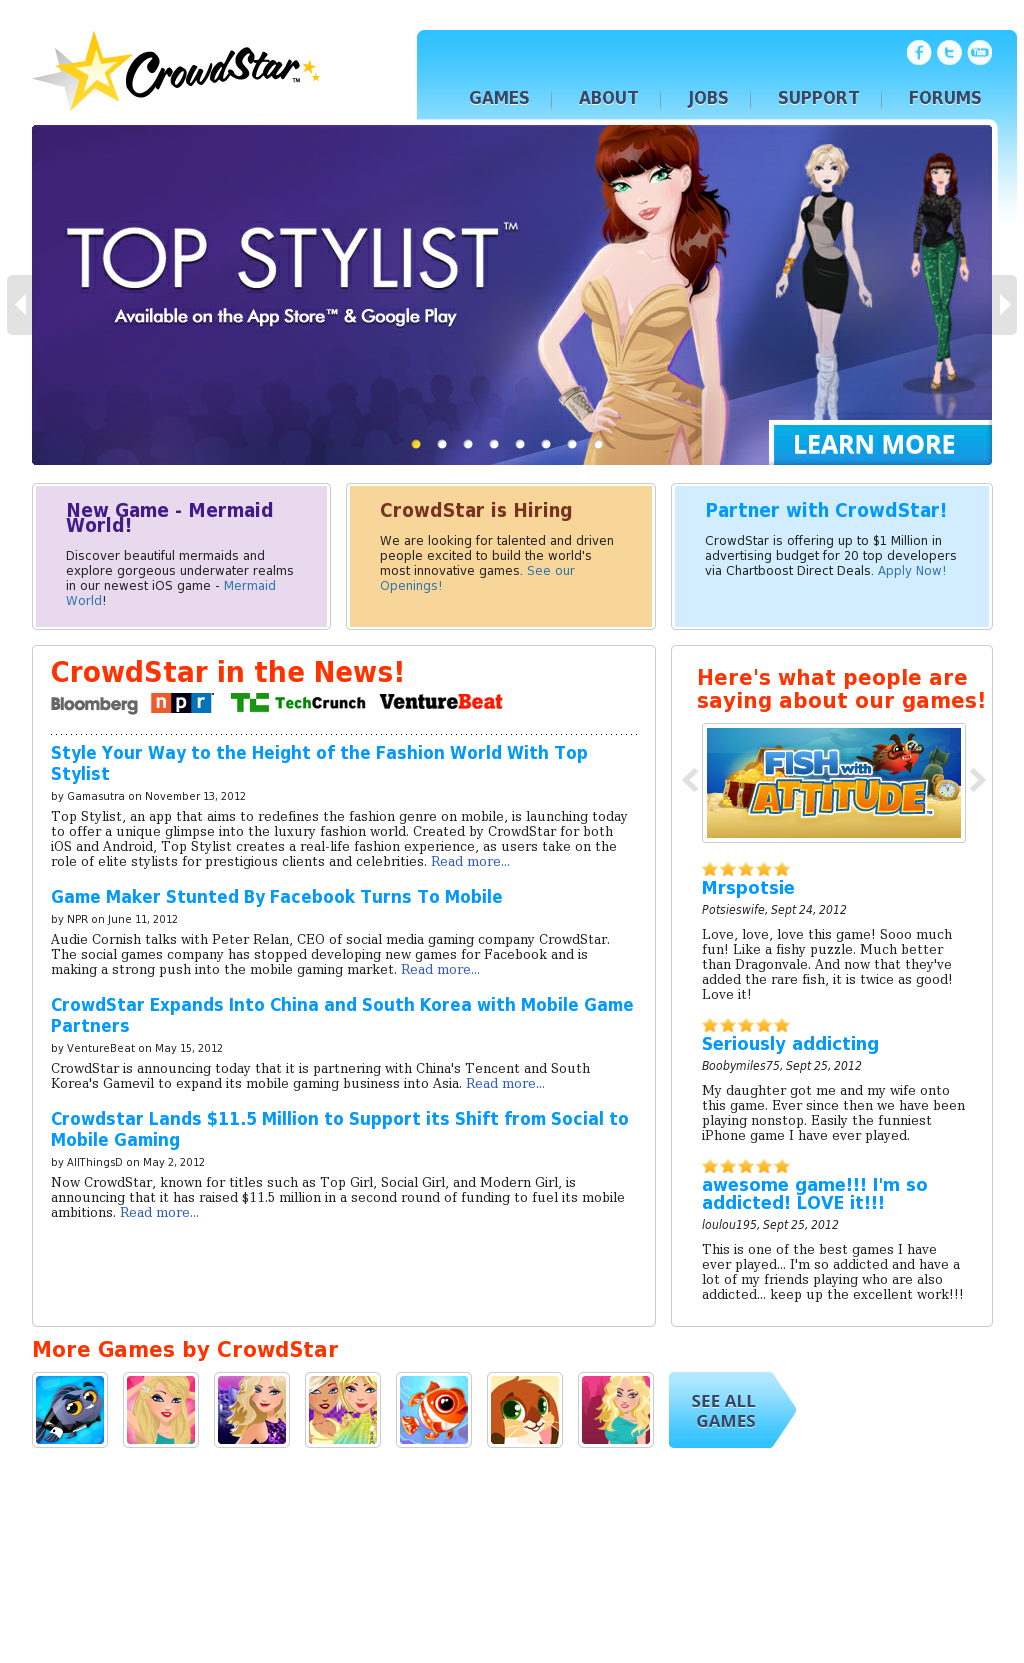 CrowdStar Competitors, Revenue and Employees - Owler Company